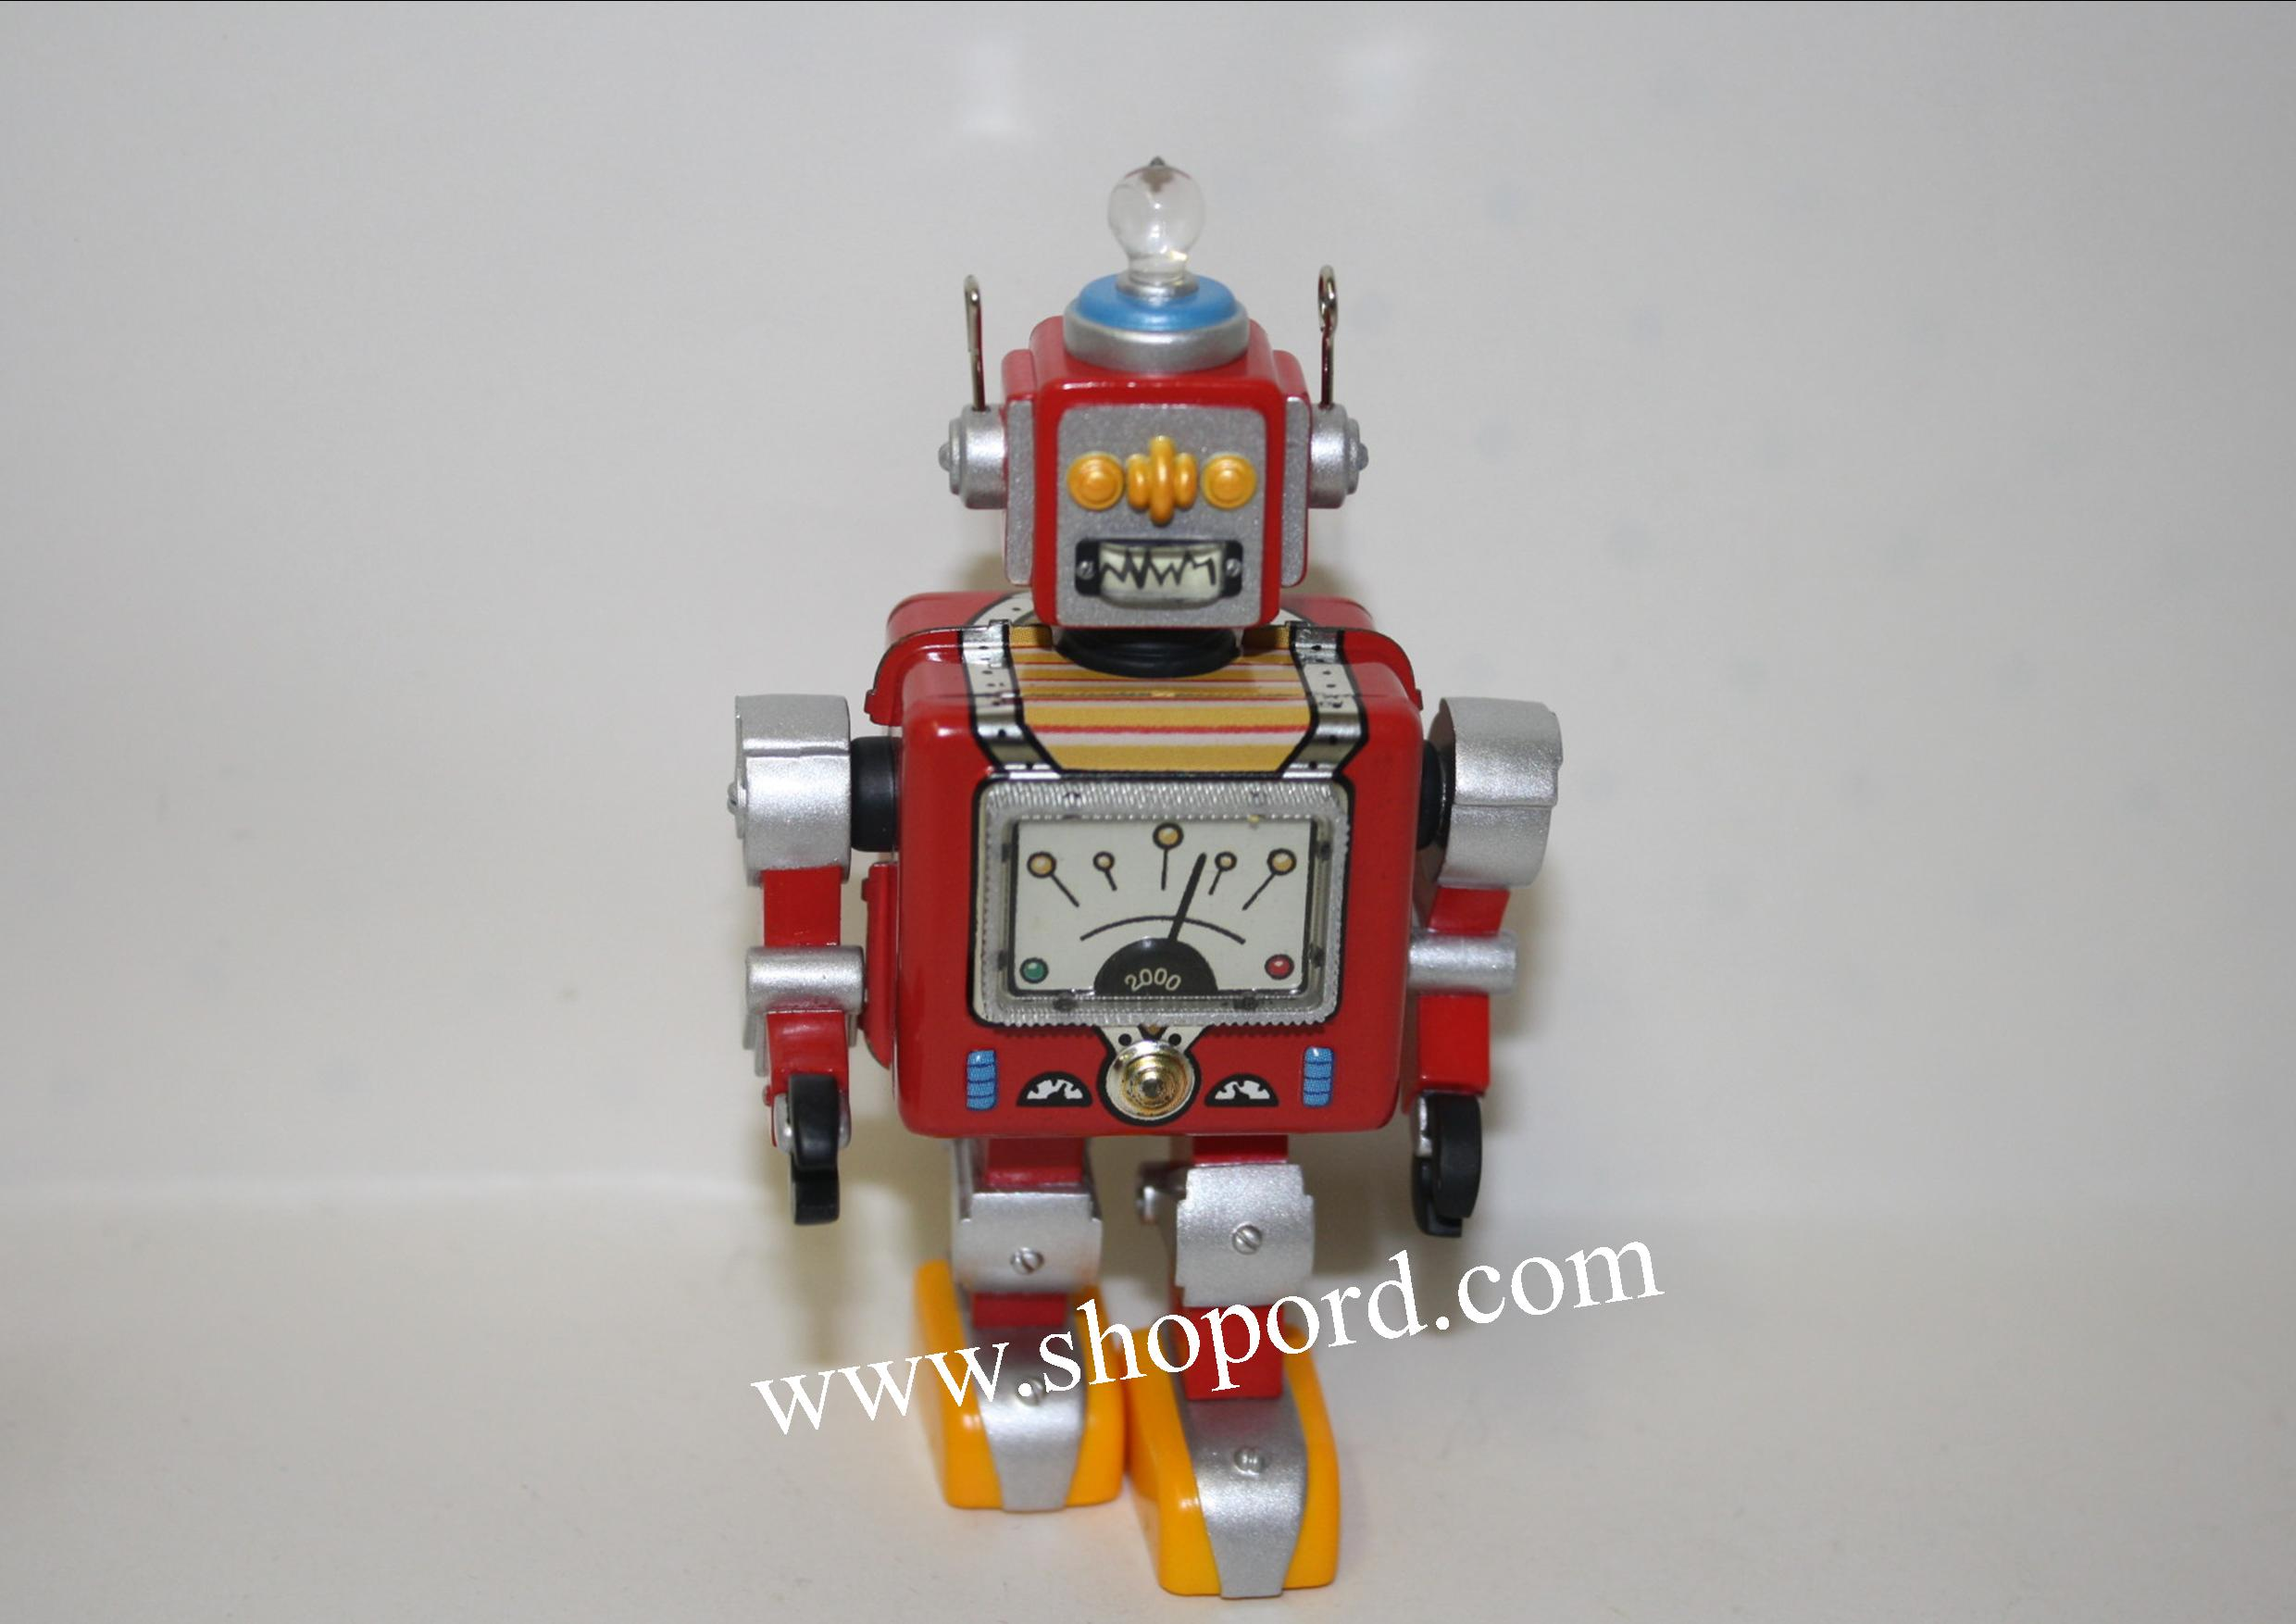 Hallmark 2000 Robot Parade Ornament QX6771 1st In The Series